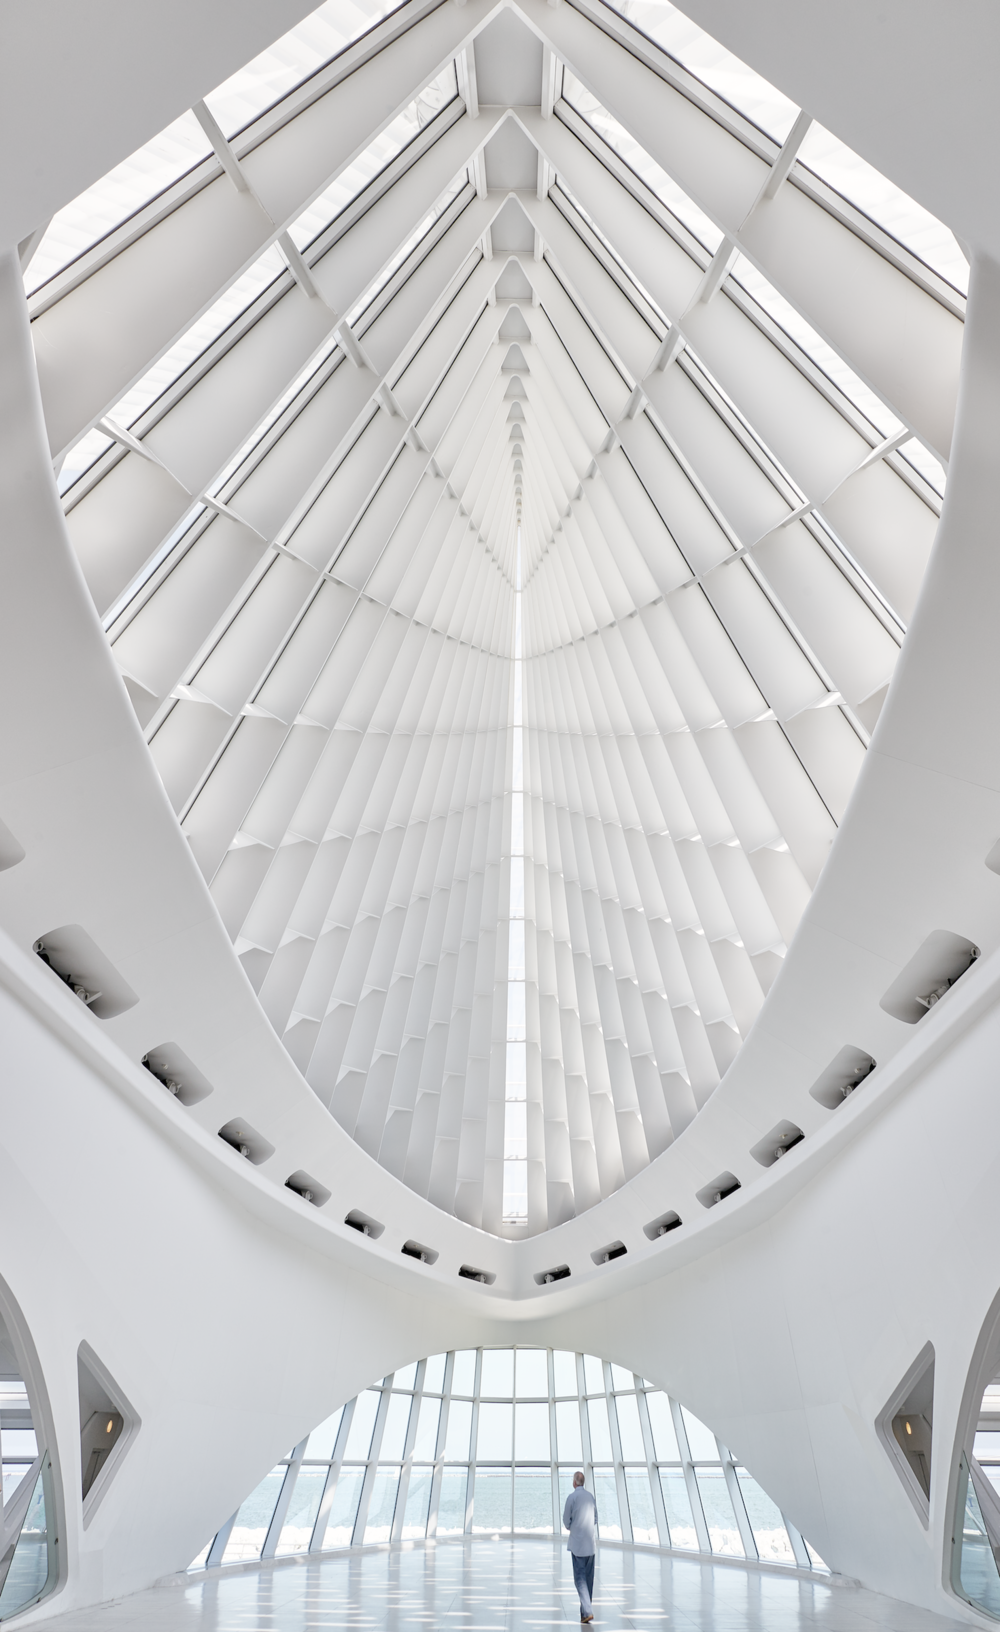 The Milwaukee Art Museum (MAM) Photo by Candamill